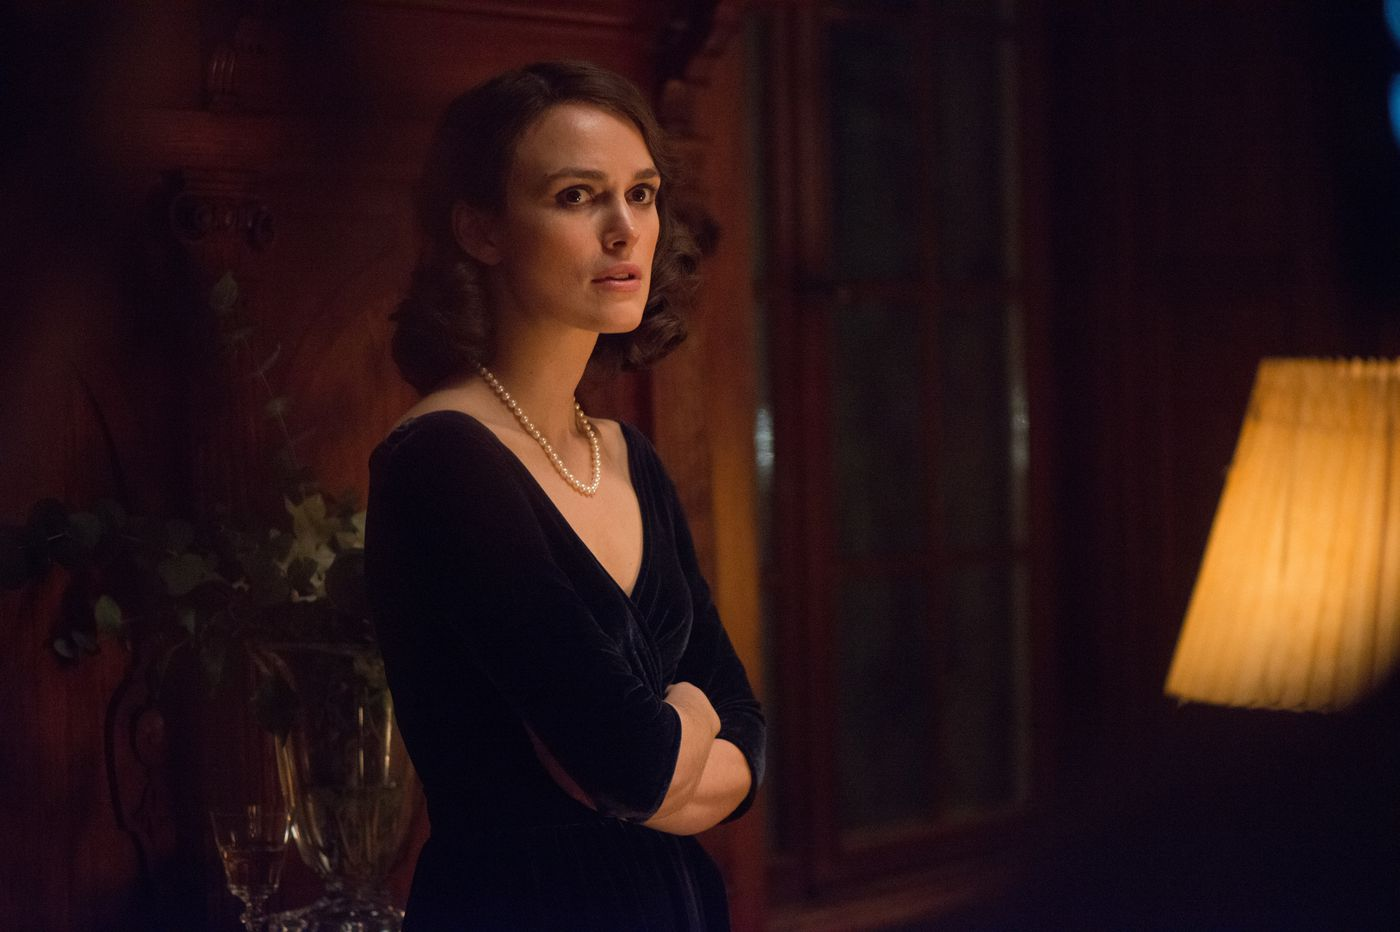 Keira Knightley on acting in the 'Aftermath' of motherhood